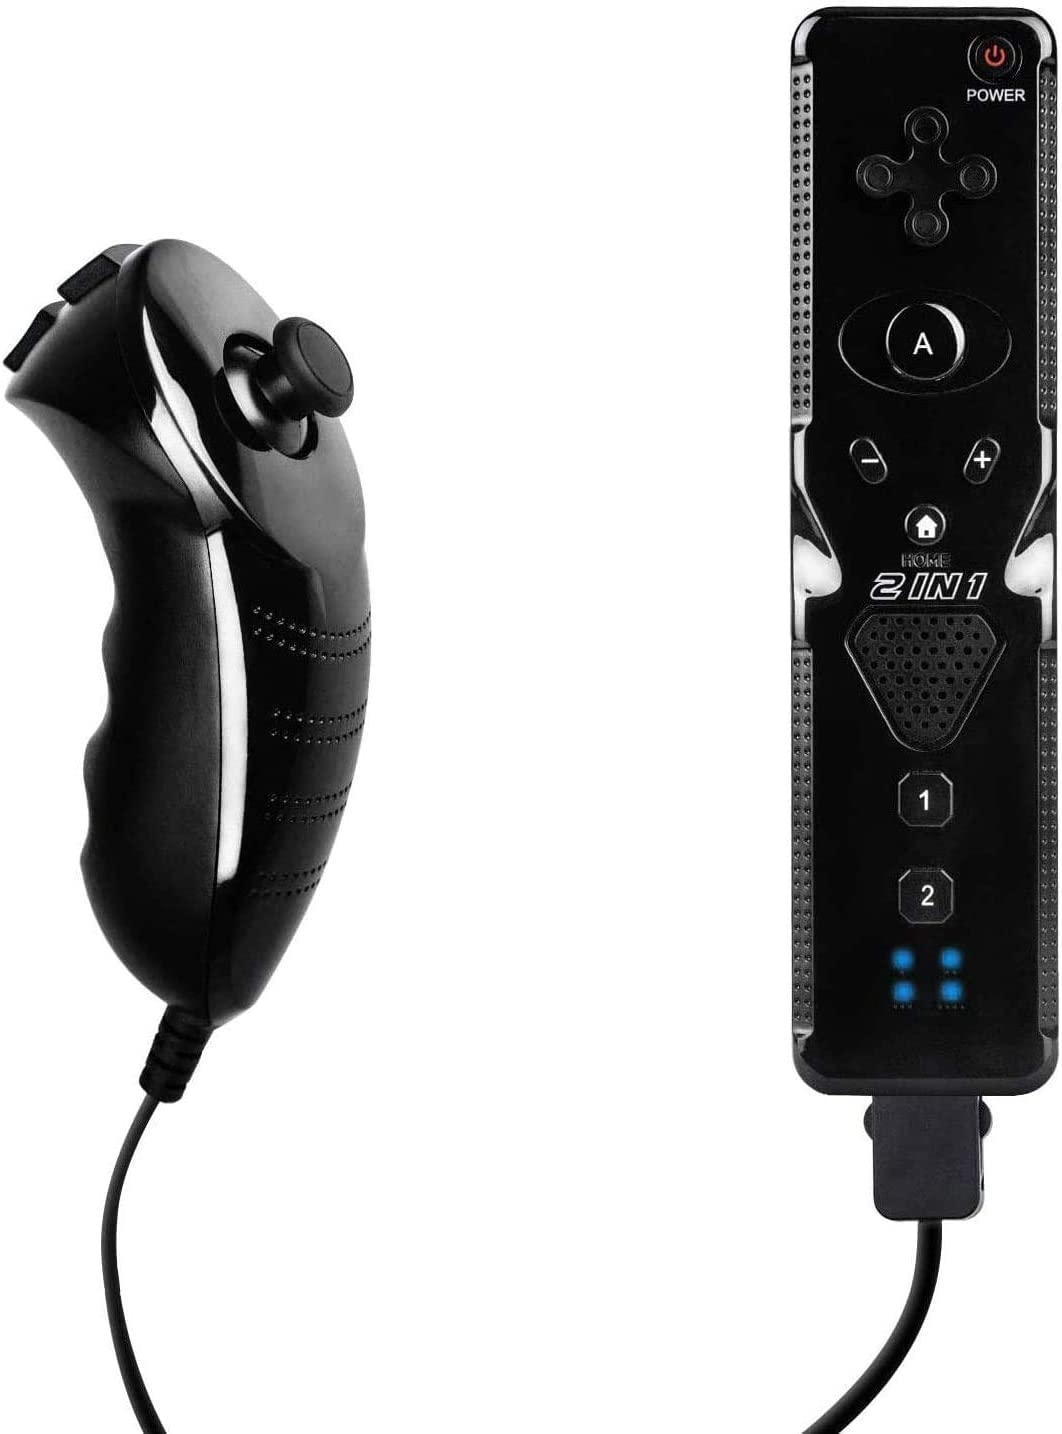 Wii Remote Controller and Nunchuck Controller Compatible for Nintendo Wii&Wii U Console Build-in Motion Sensor Plus (Black)